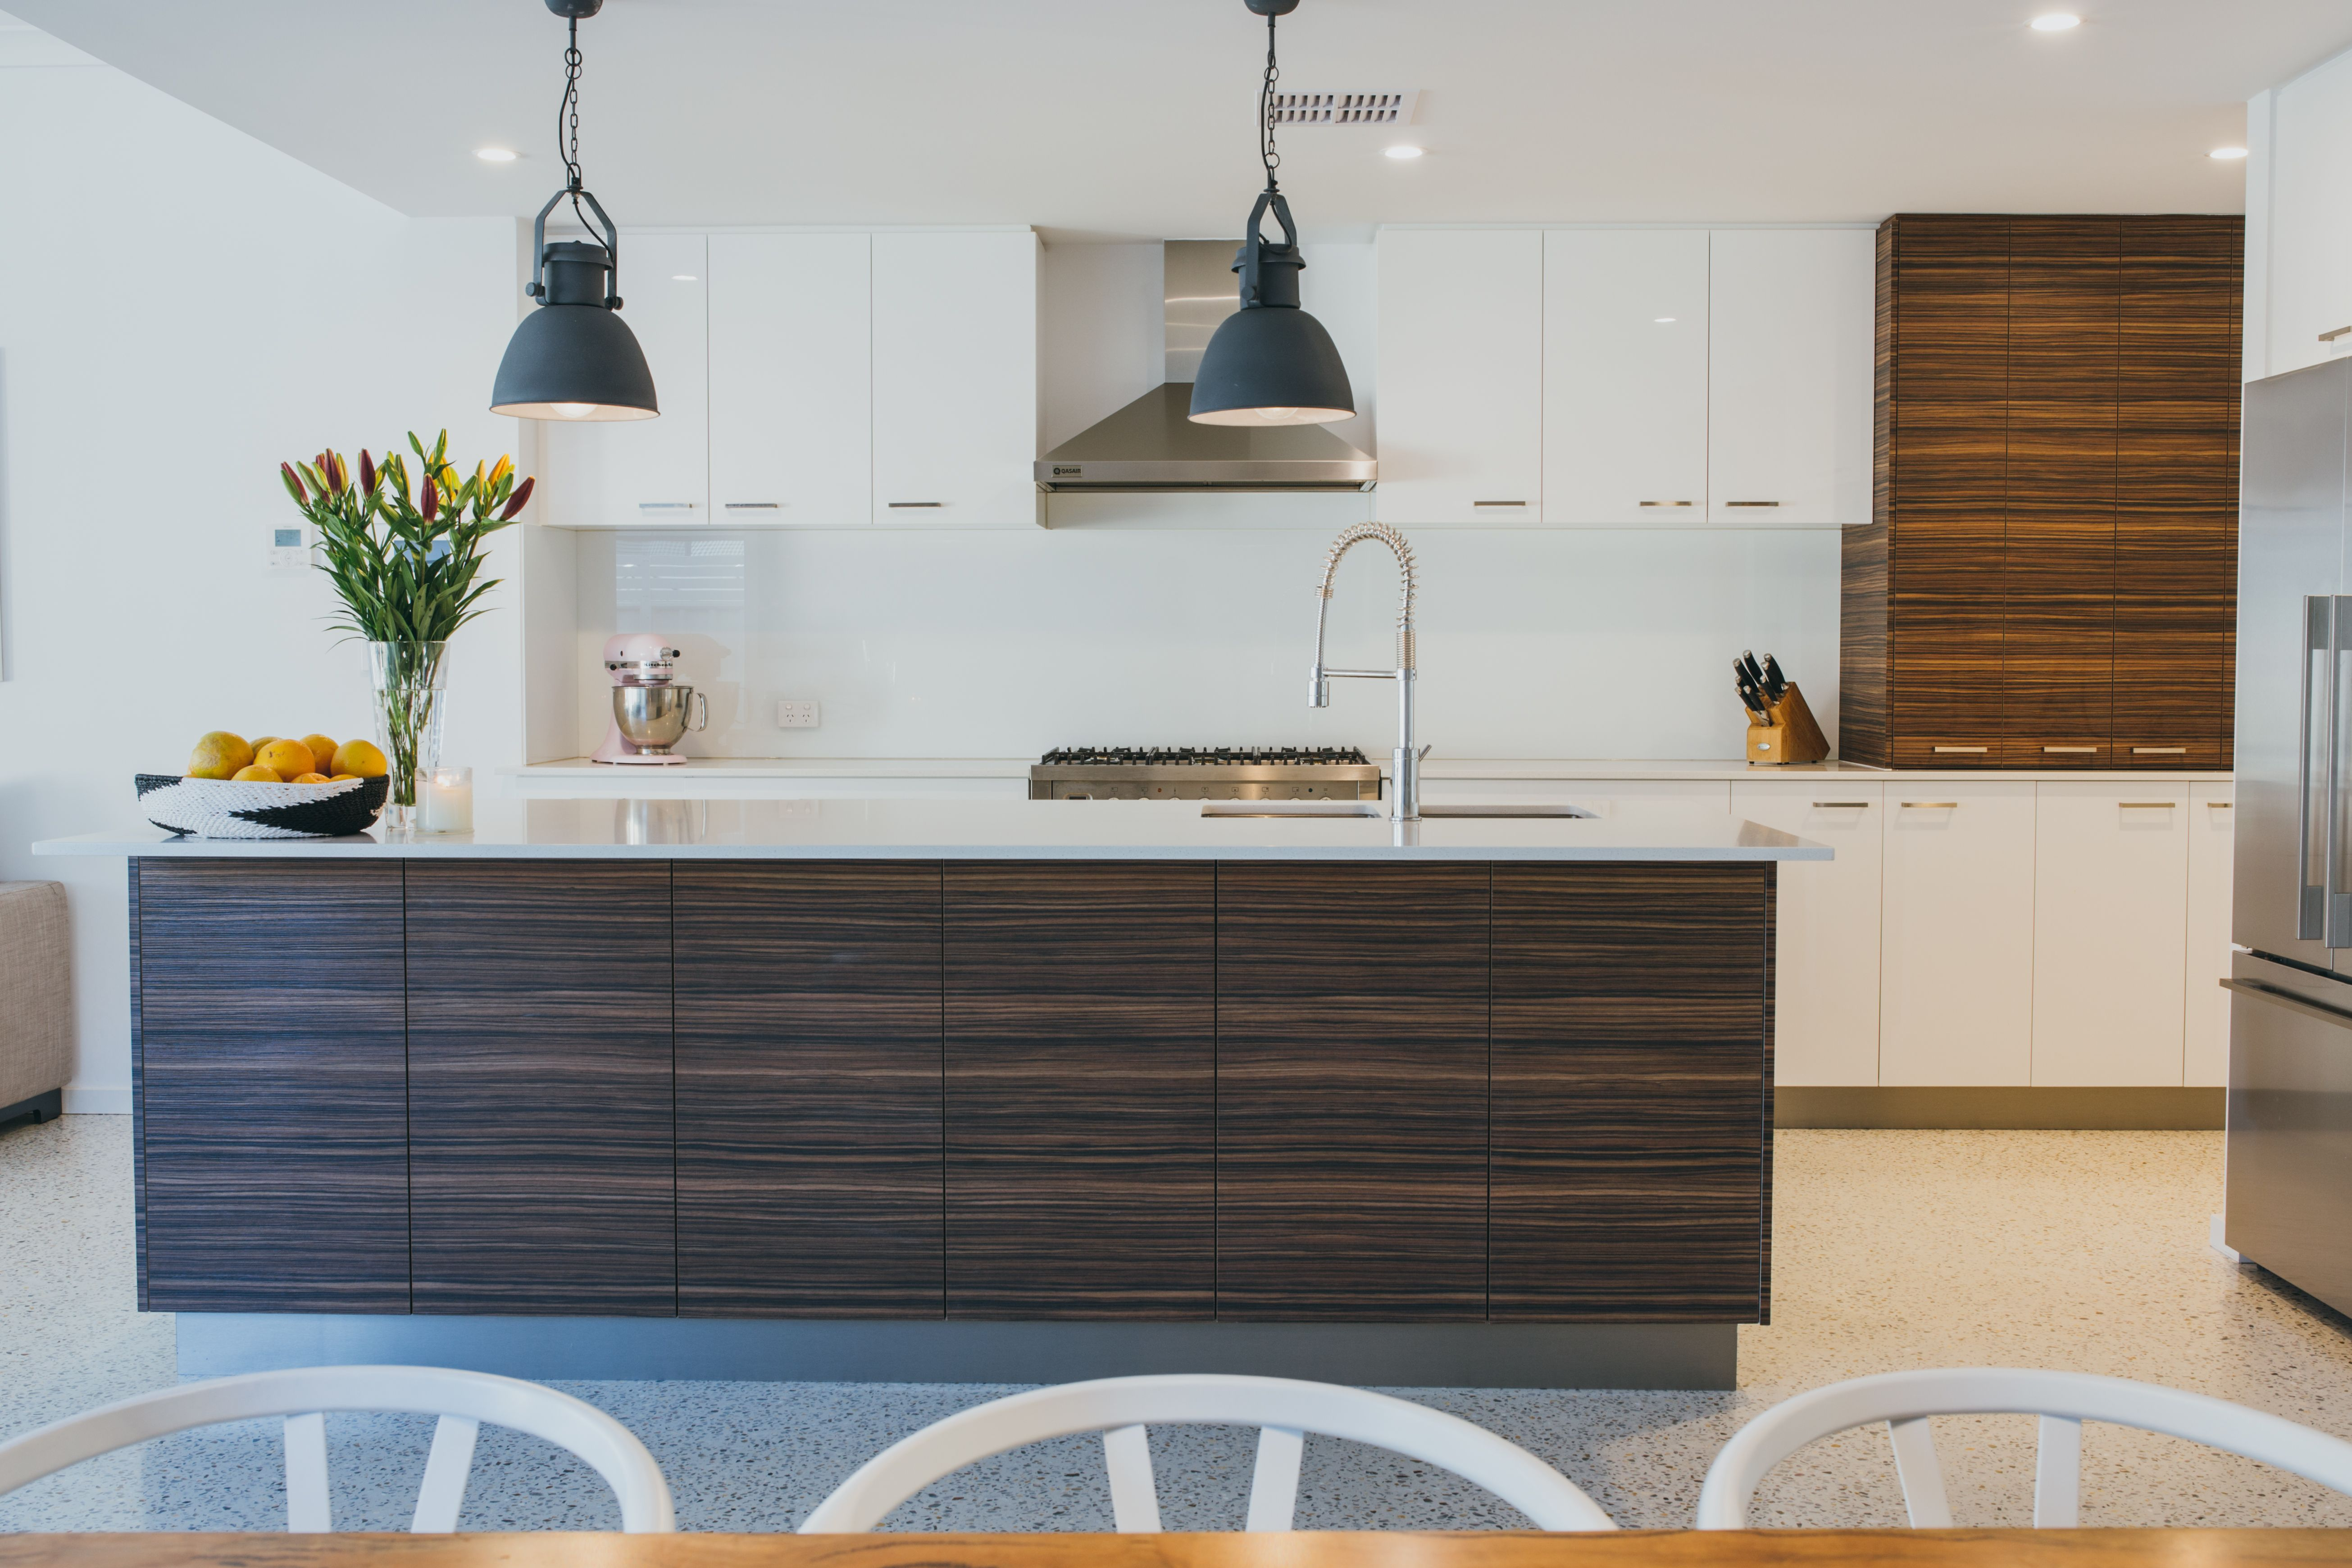 Kitchen Design by Manor Homes. Perth's custom design and